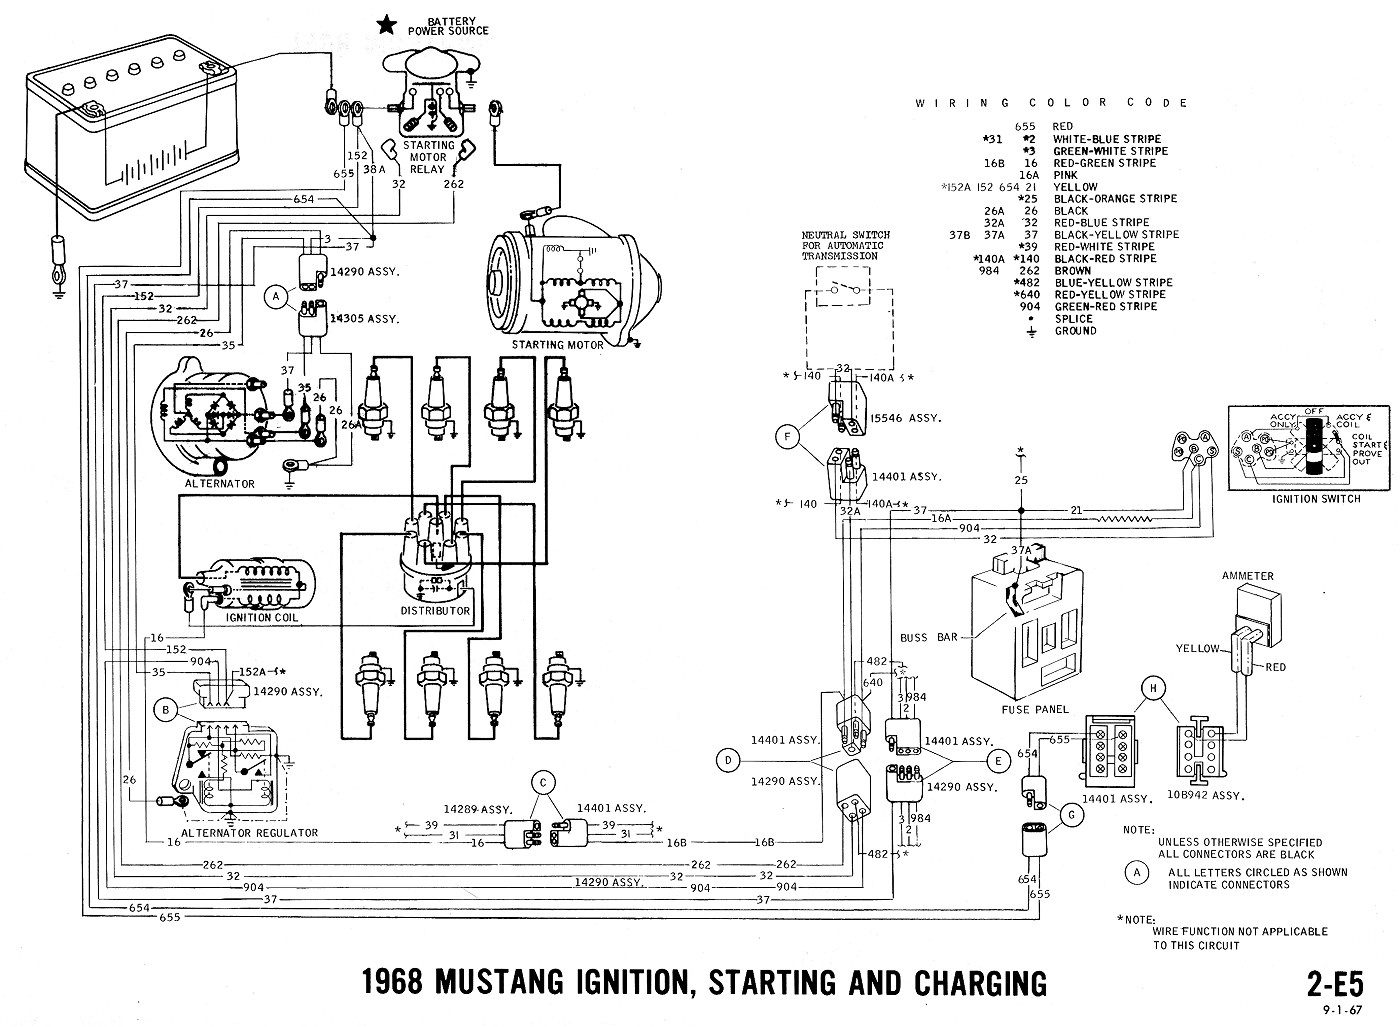 1965 Ford Mustang Wiper Motor Wiring Diagram List Of Schematic Engine Alternator For Auto Electrical Rh Mit Edu Uk Hardtobelieve Me